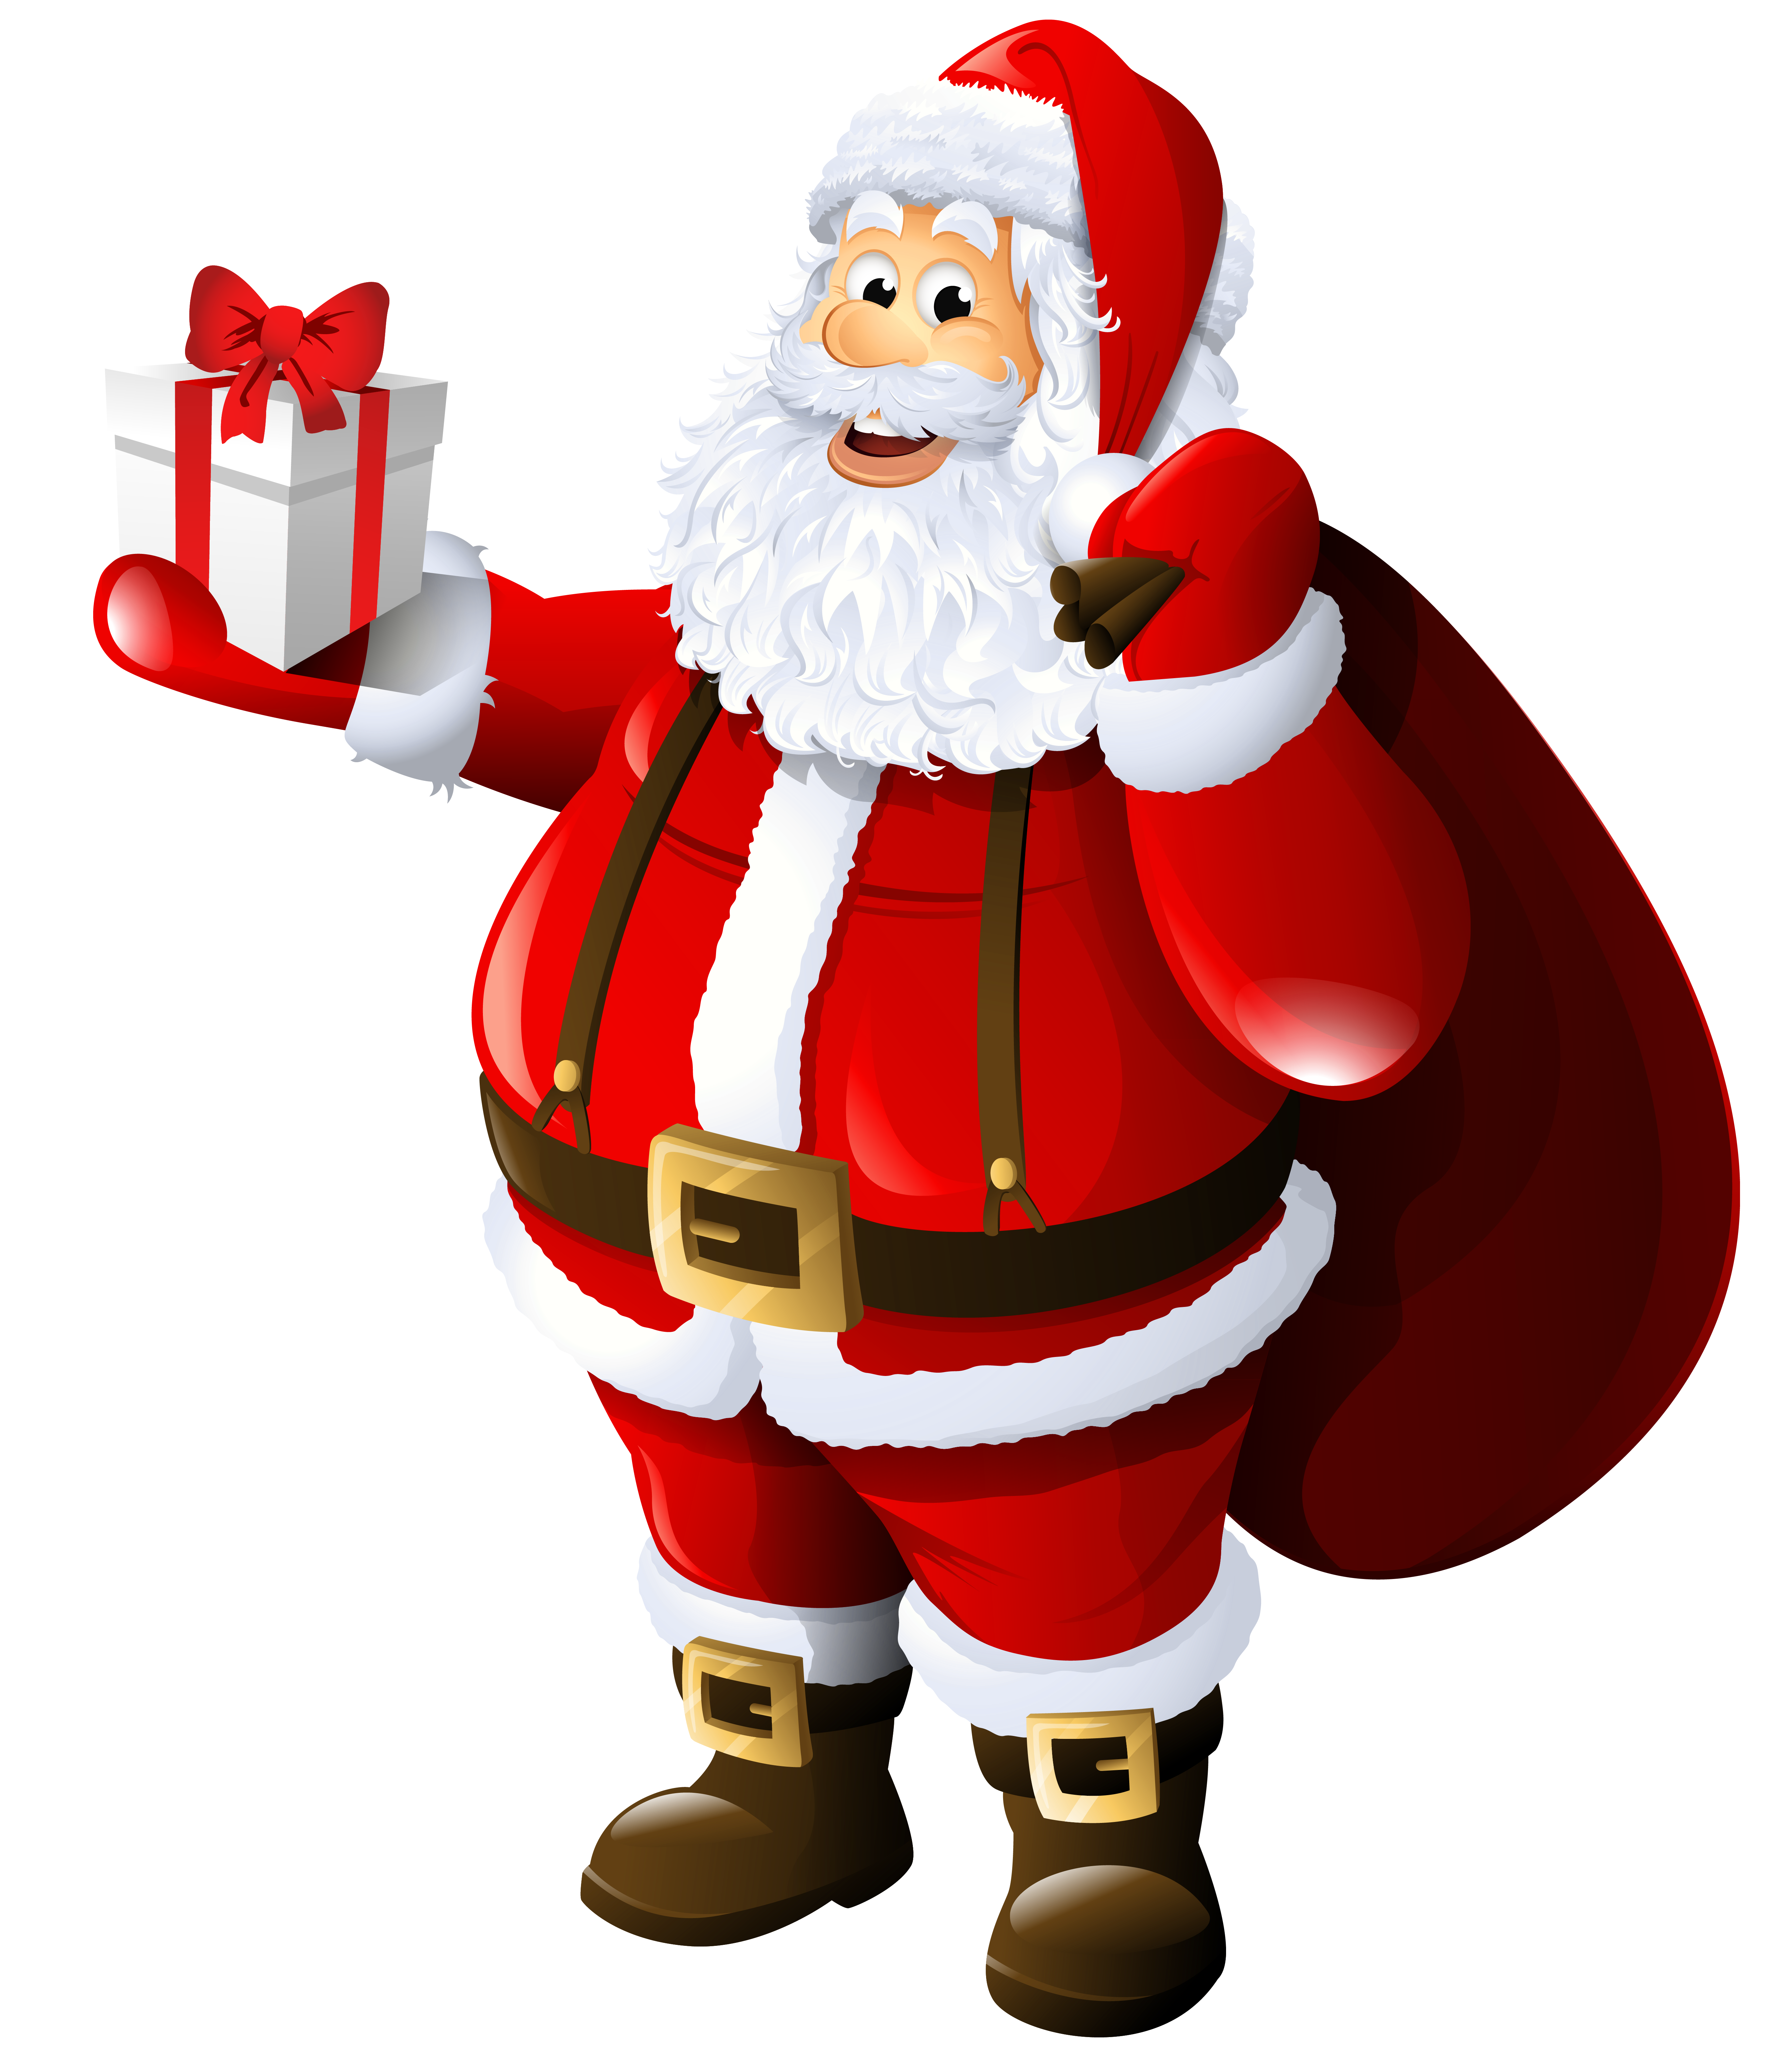 Transparent with gift and. Gifts clipart santa claus